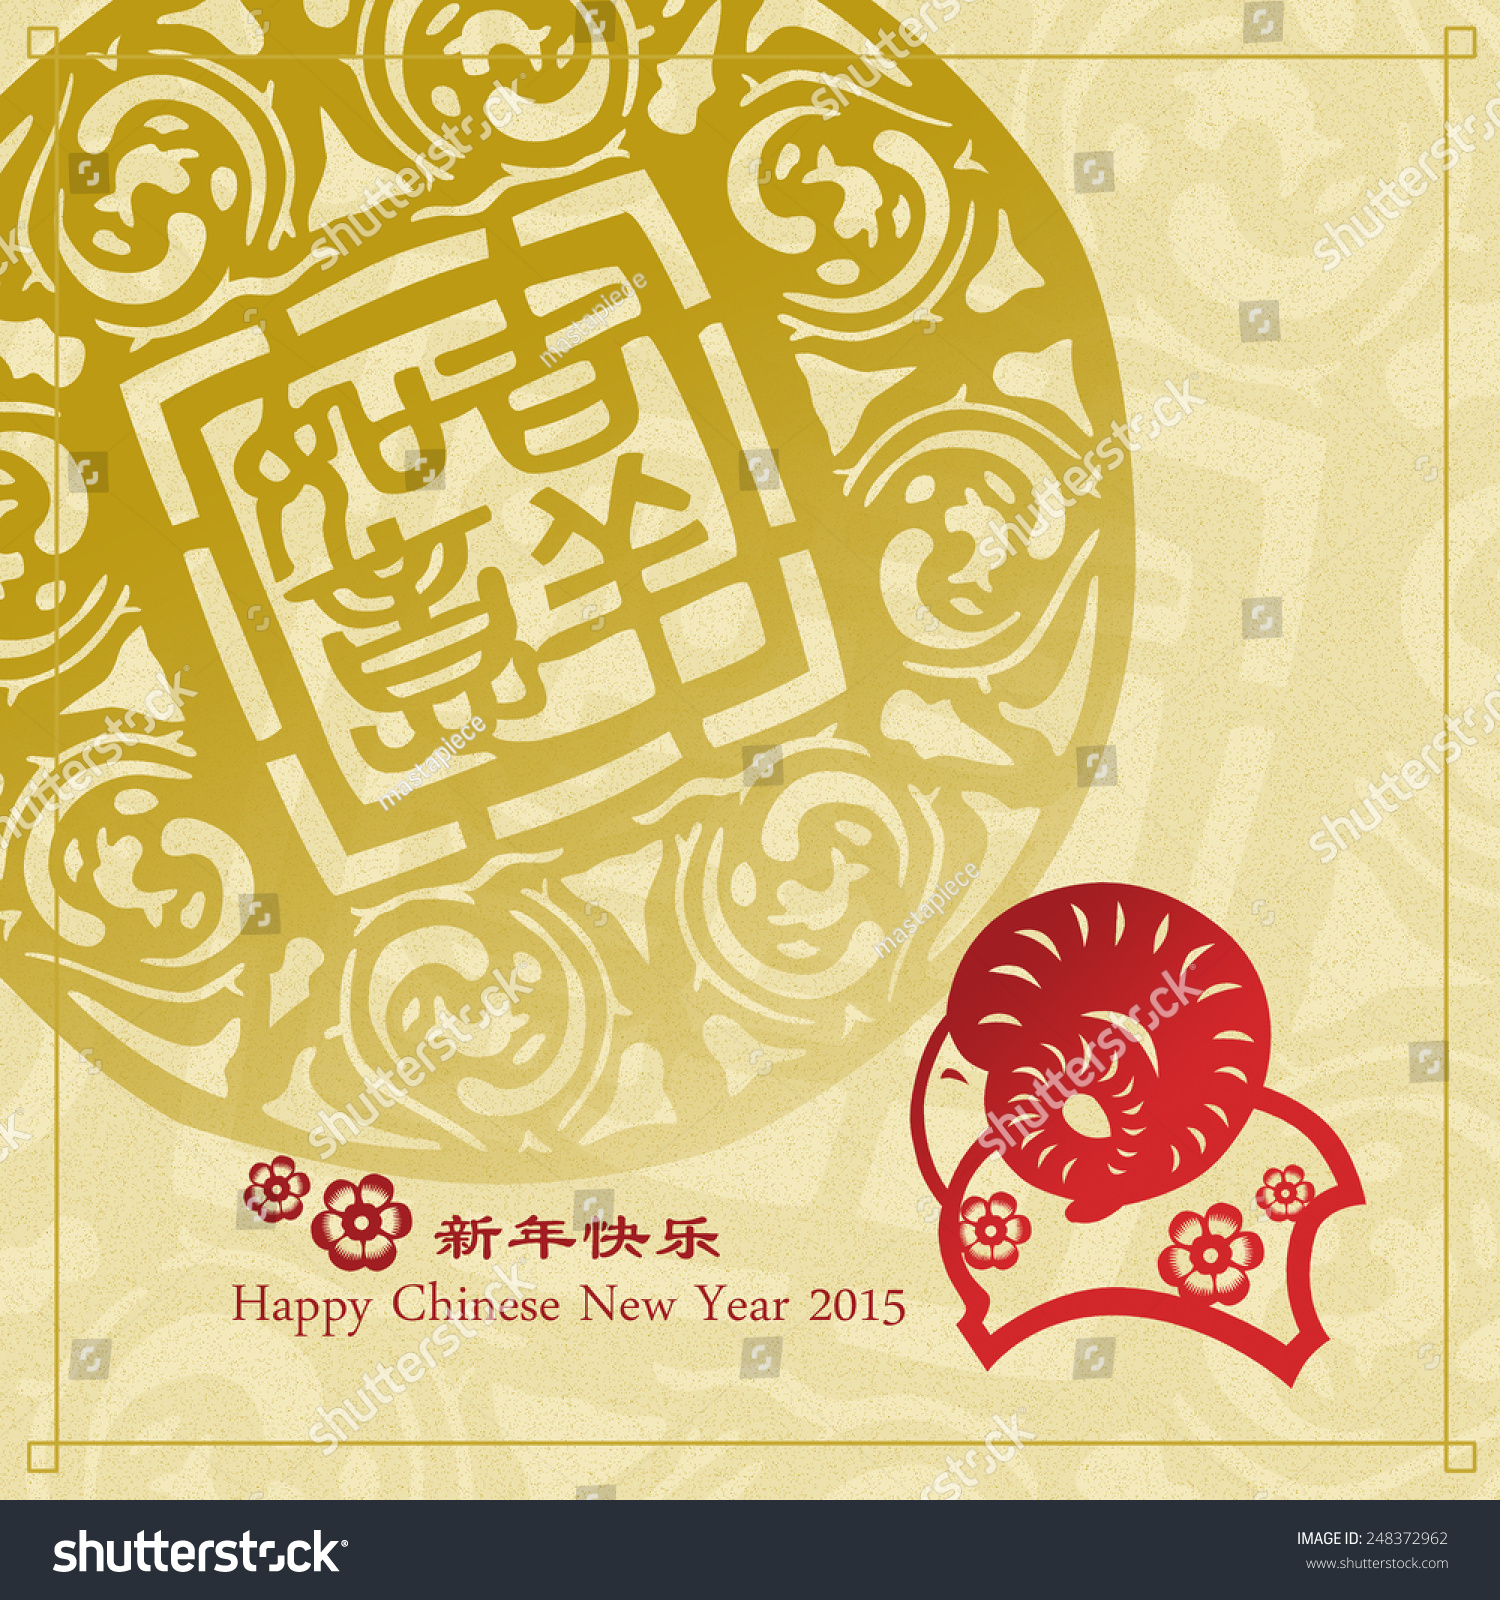 Chinese New Year Greeting Card Design Stock Illustration 248372962